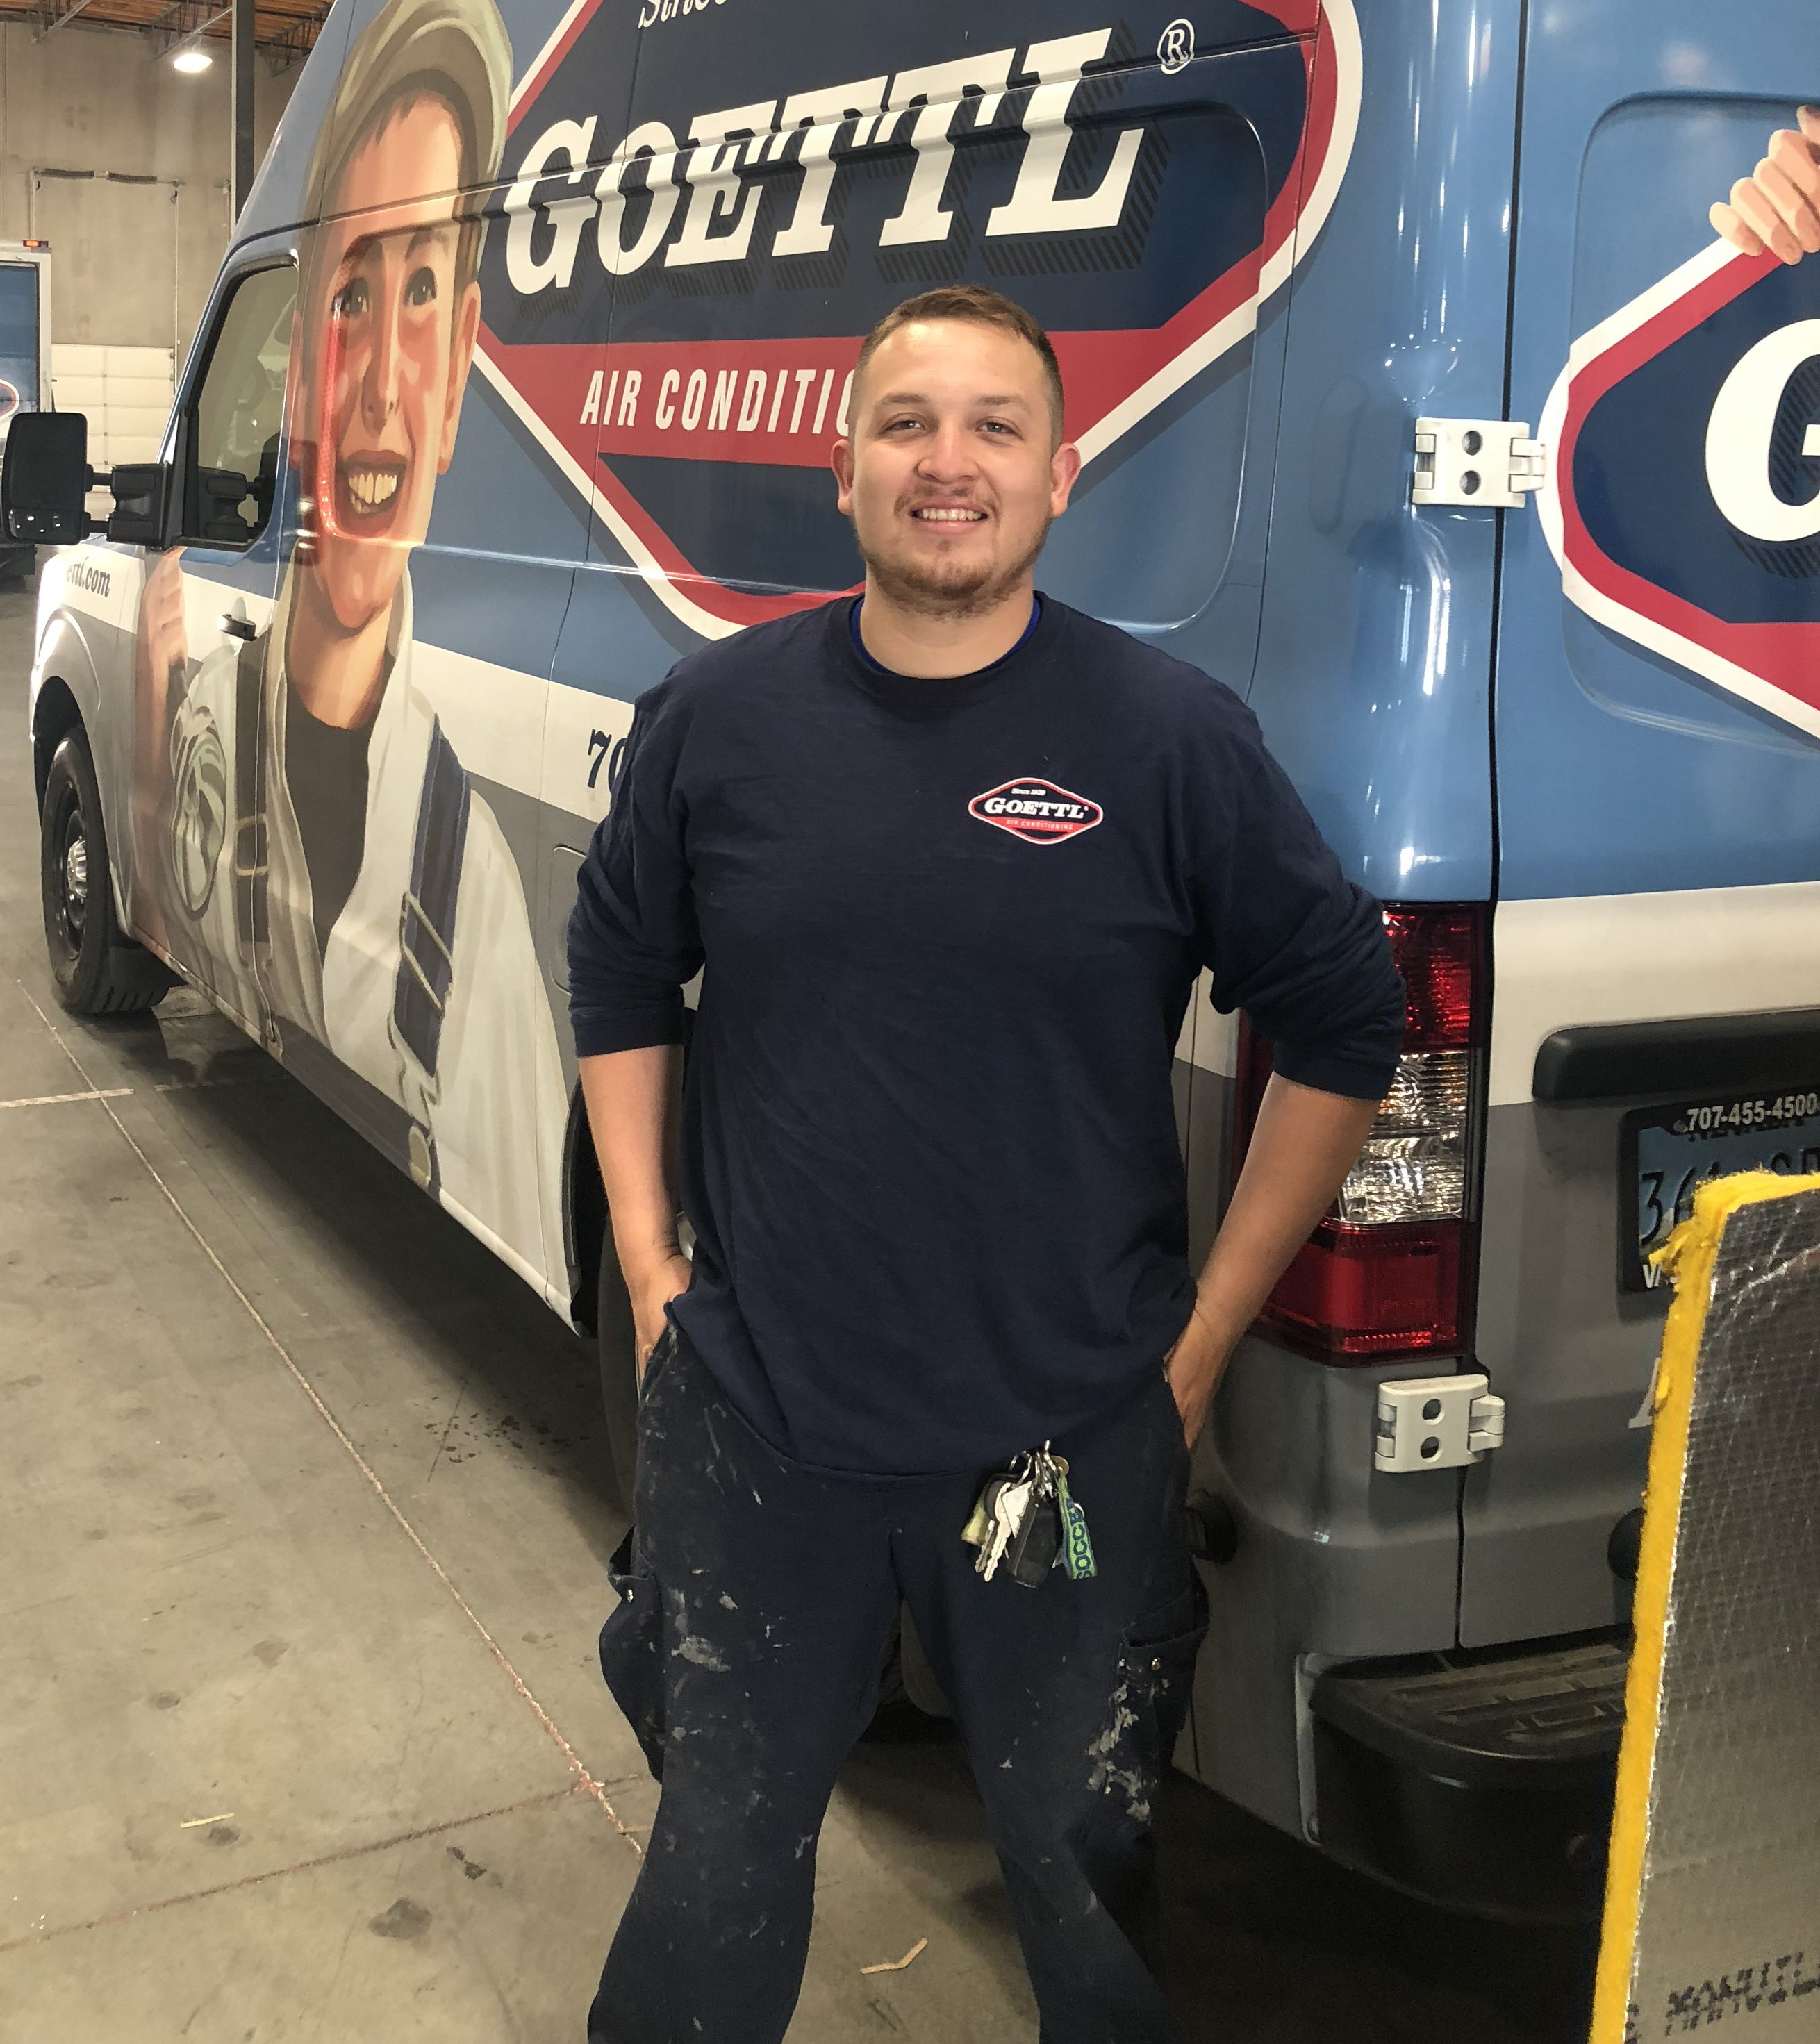 Hear it from a Goettl Tech… Angel Carrillo